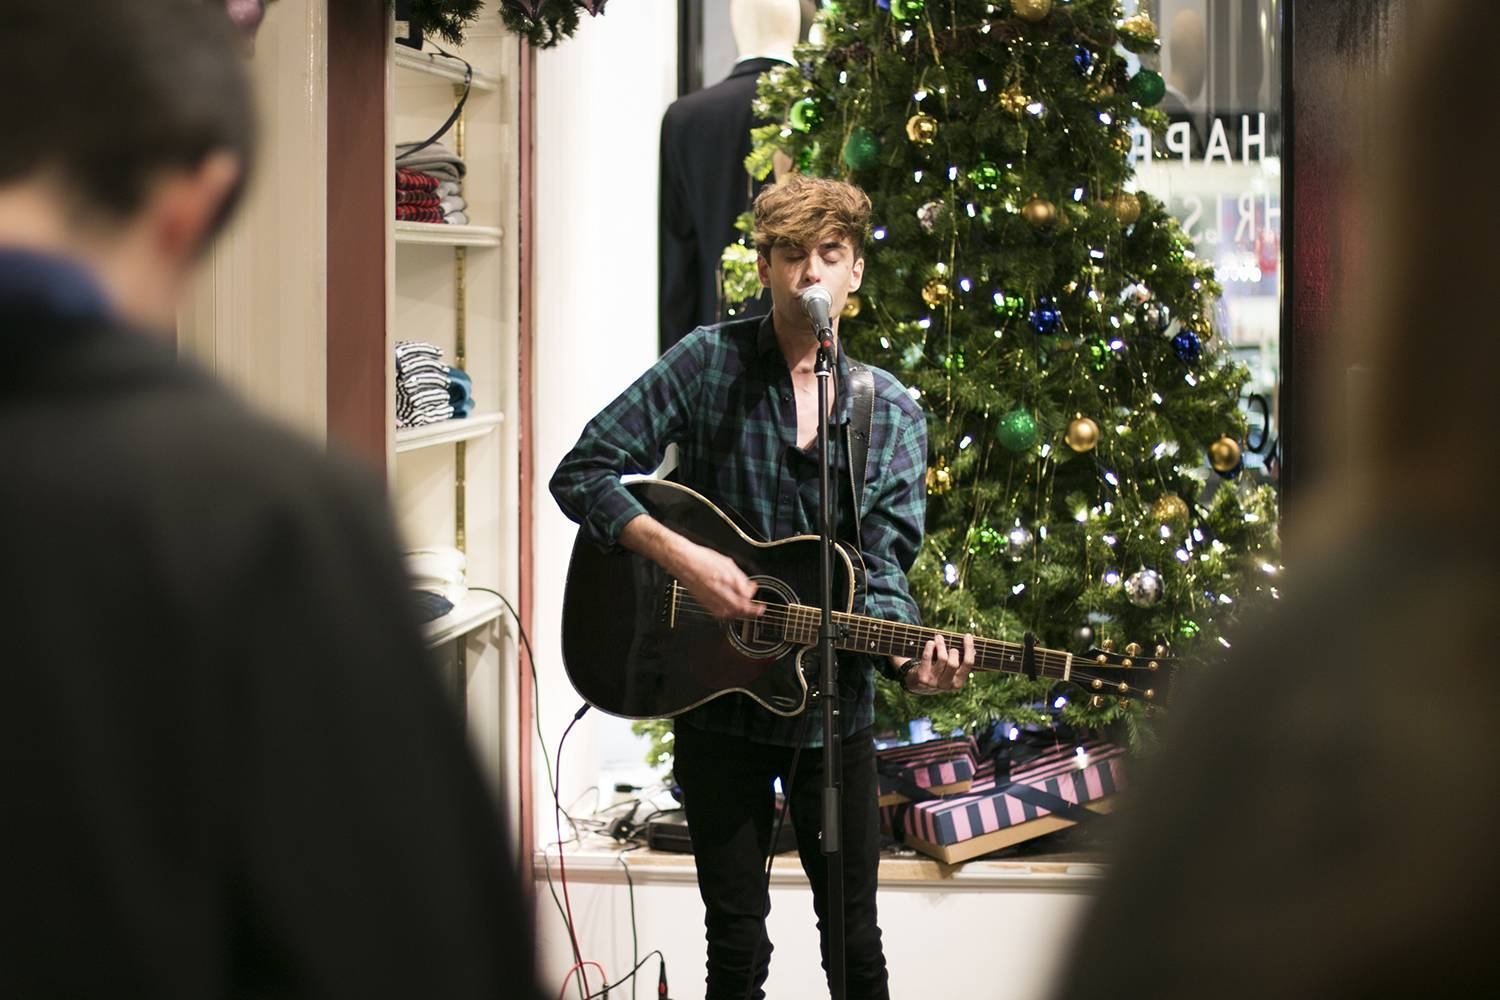 Jack Wills Belfast #CiderSessions Matt DeFreitas (photo thanks to Jack Wills Social Media team)